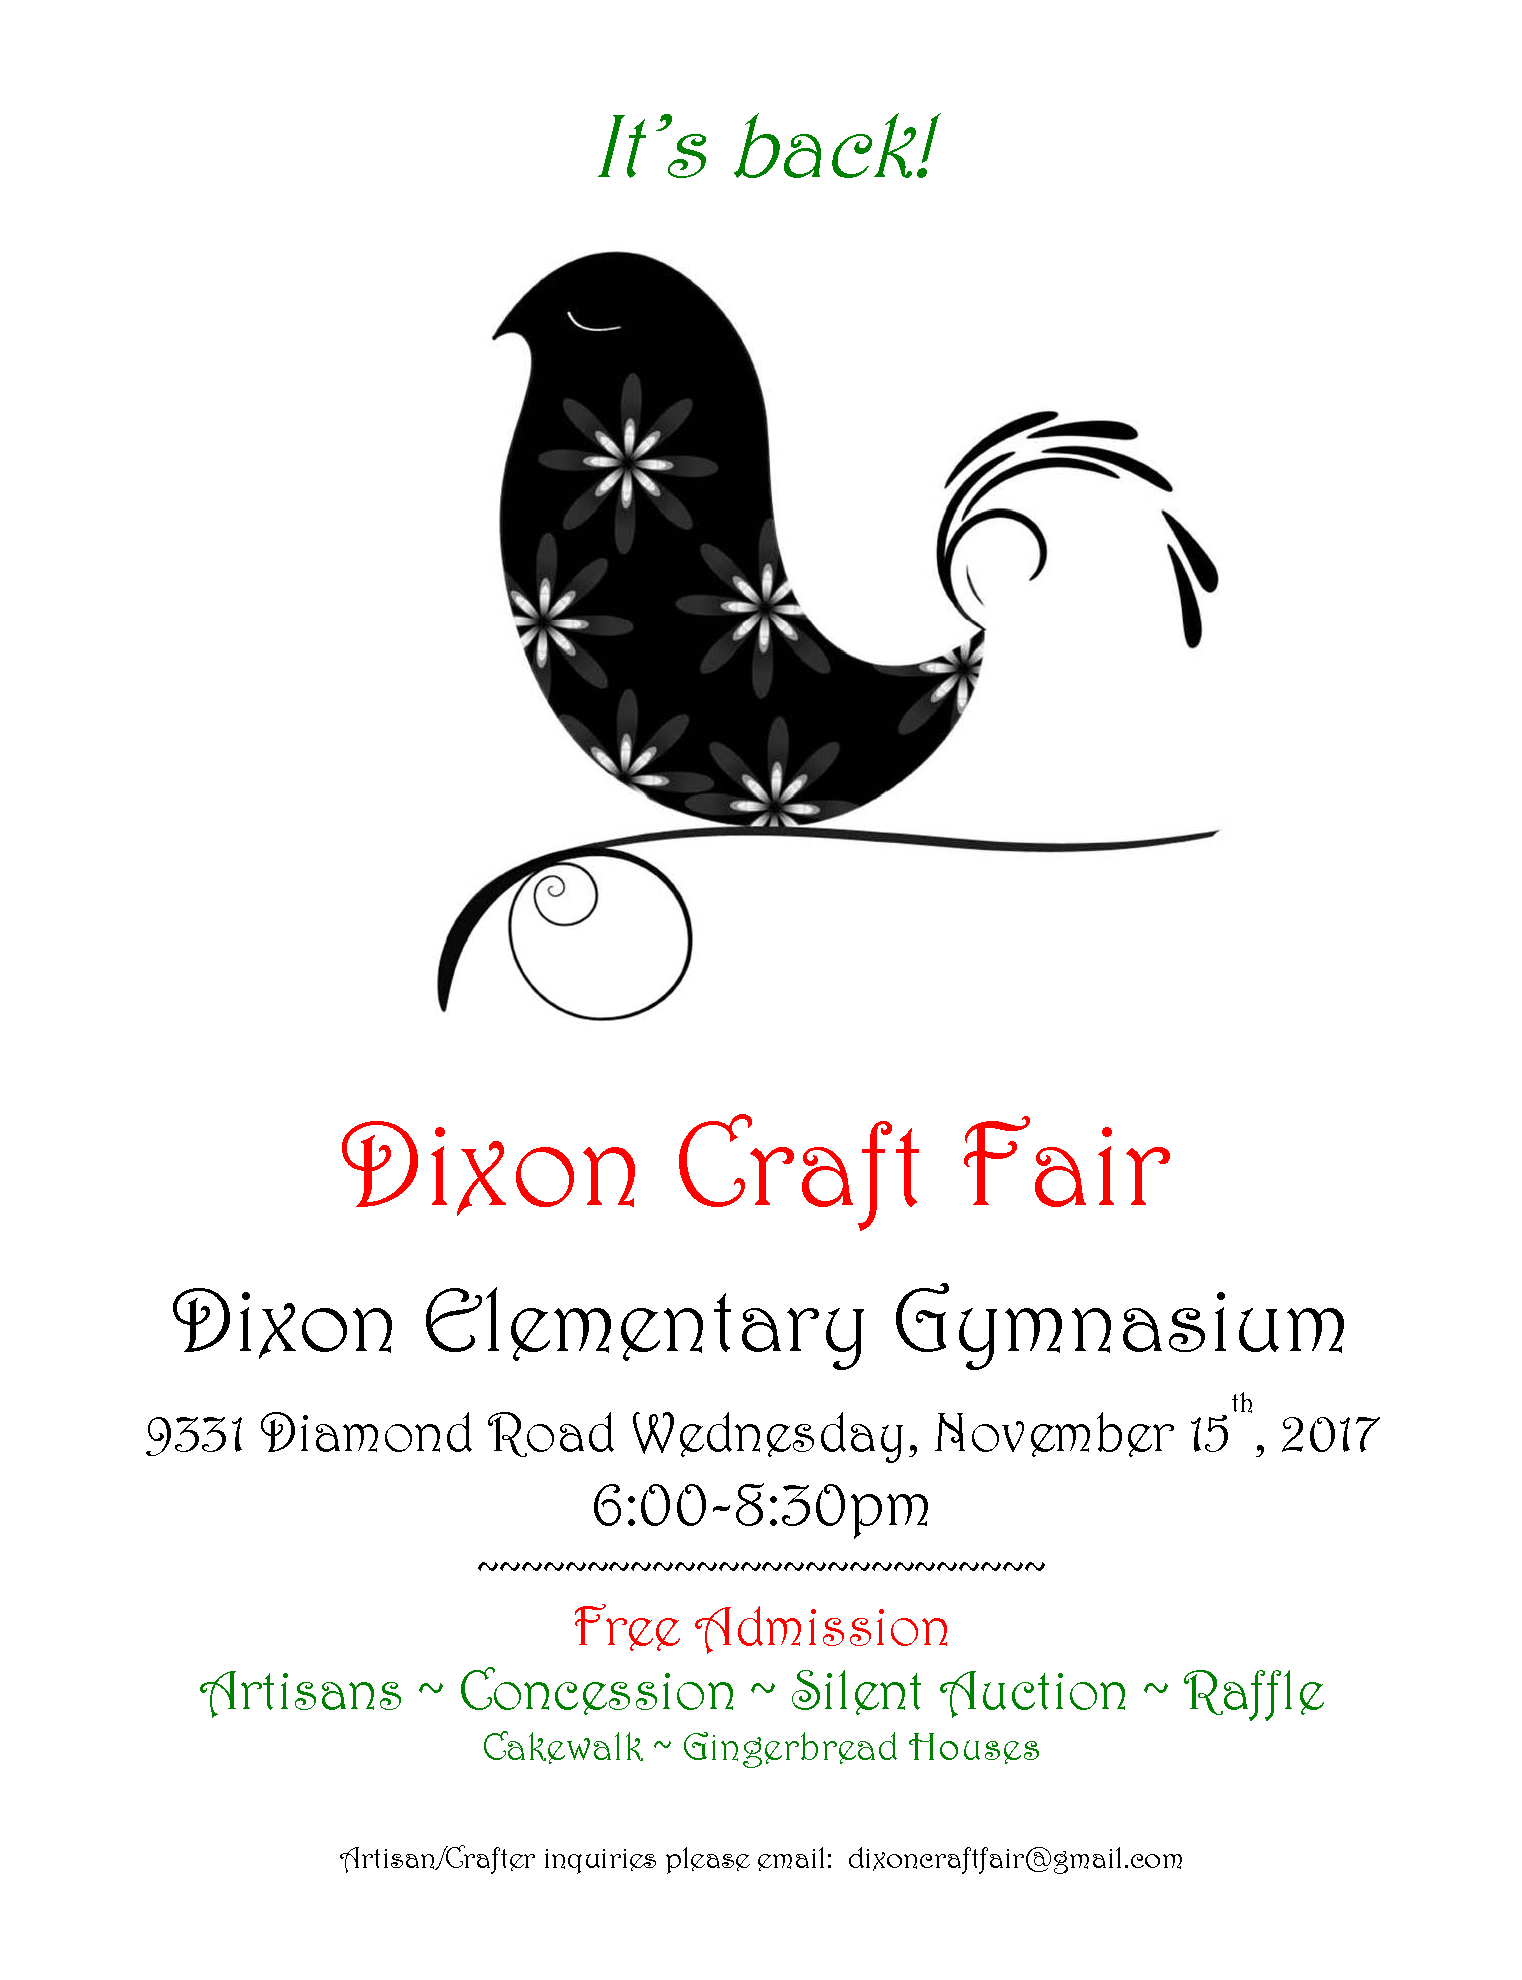 Dixon craft fair 2017 it s back vancouver events for Columbia craft show 2017